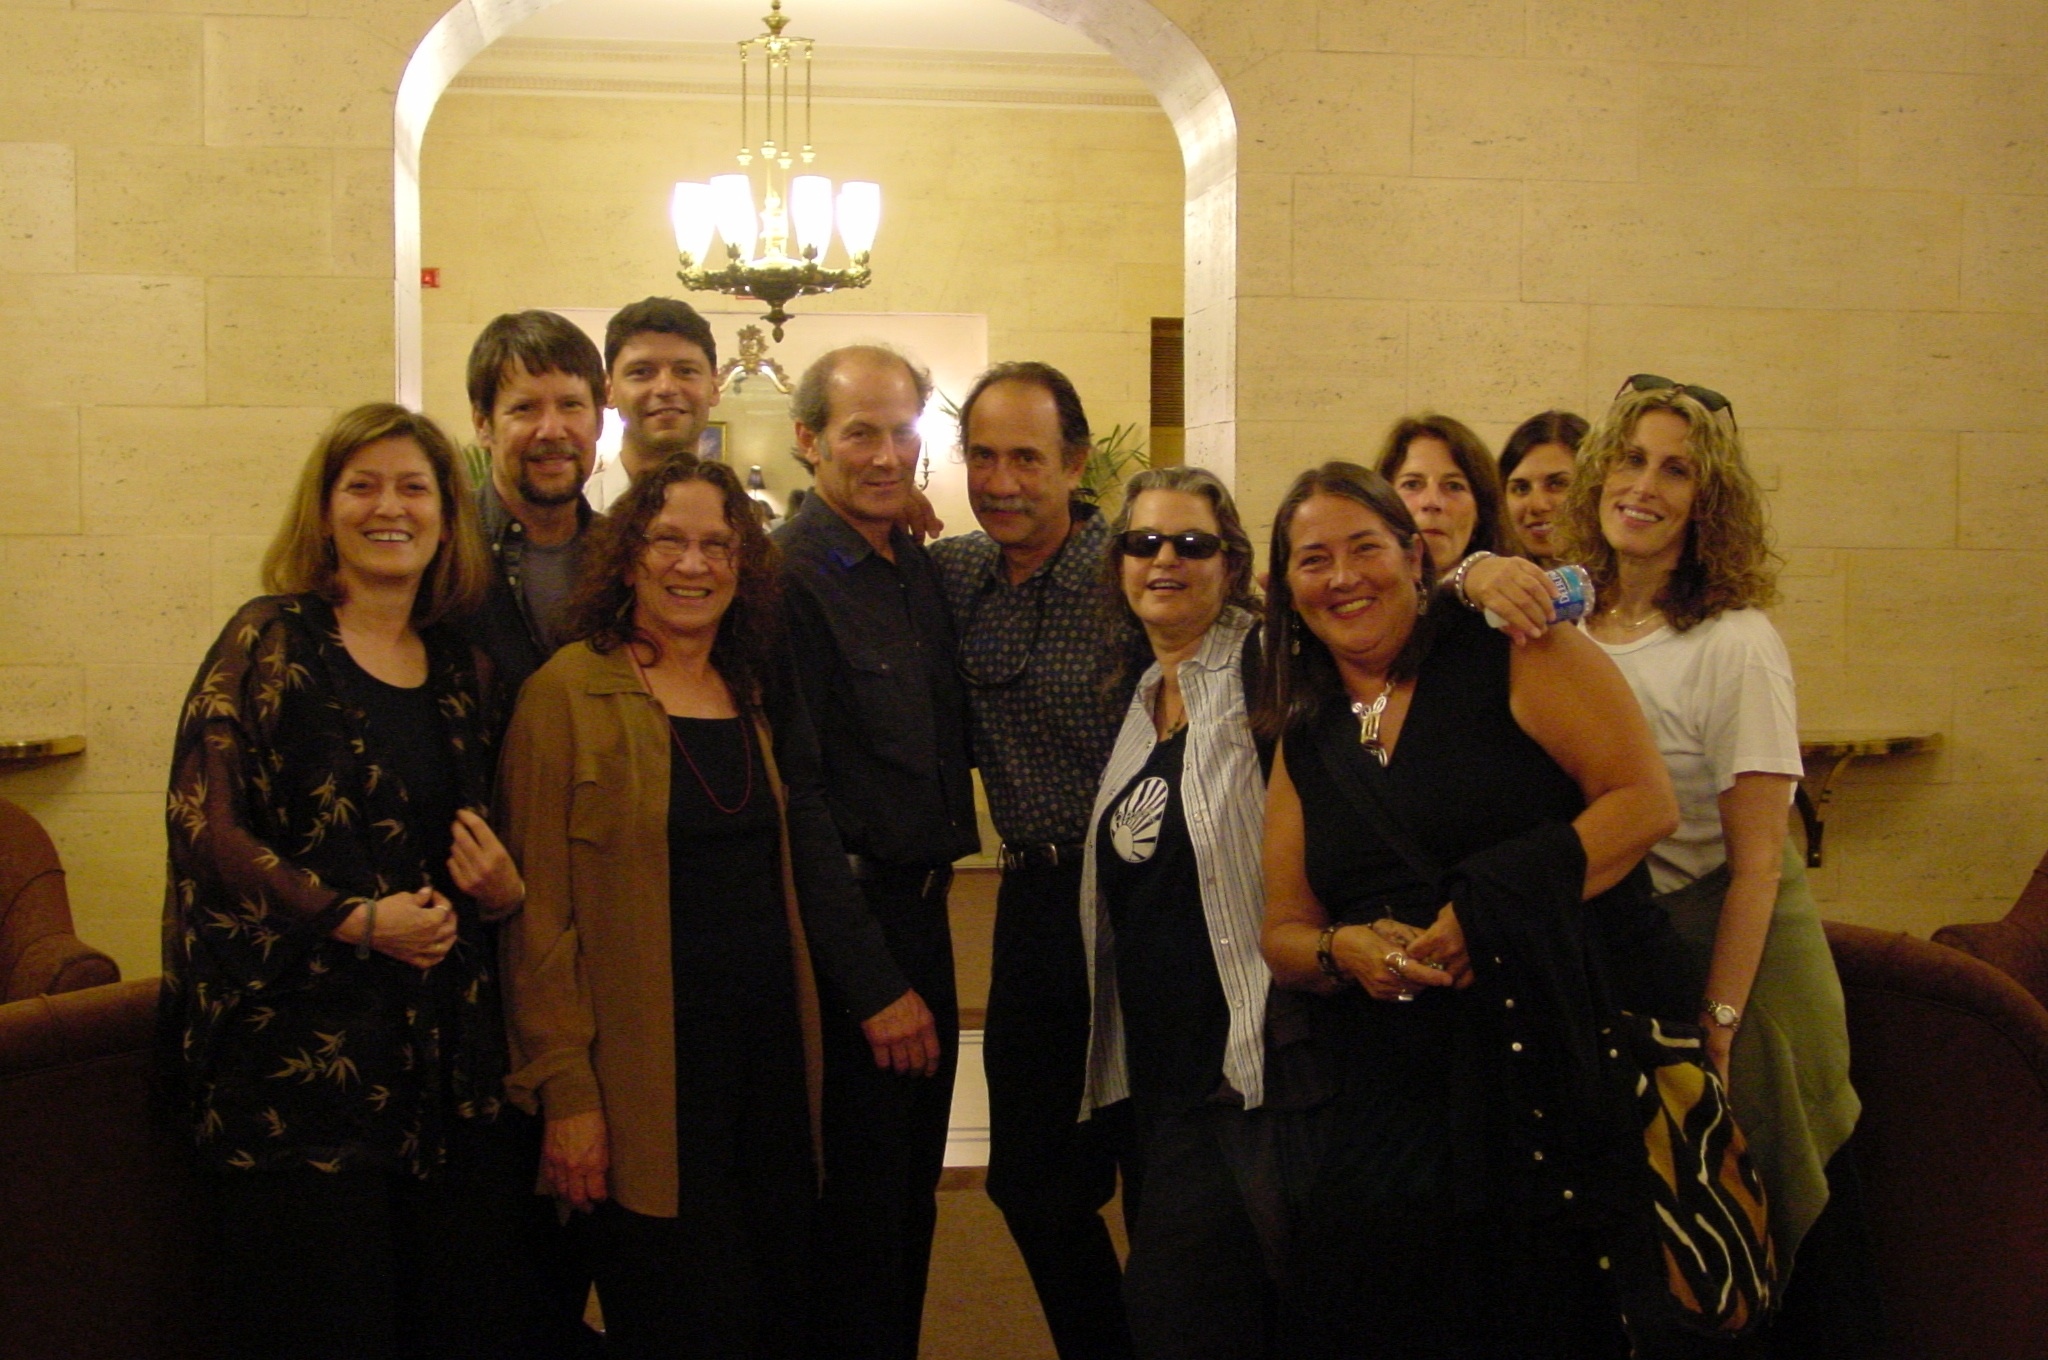 Our gang, going to see Josh Ritter in Boston, 2007